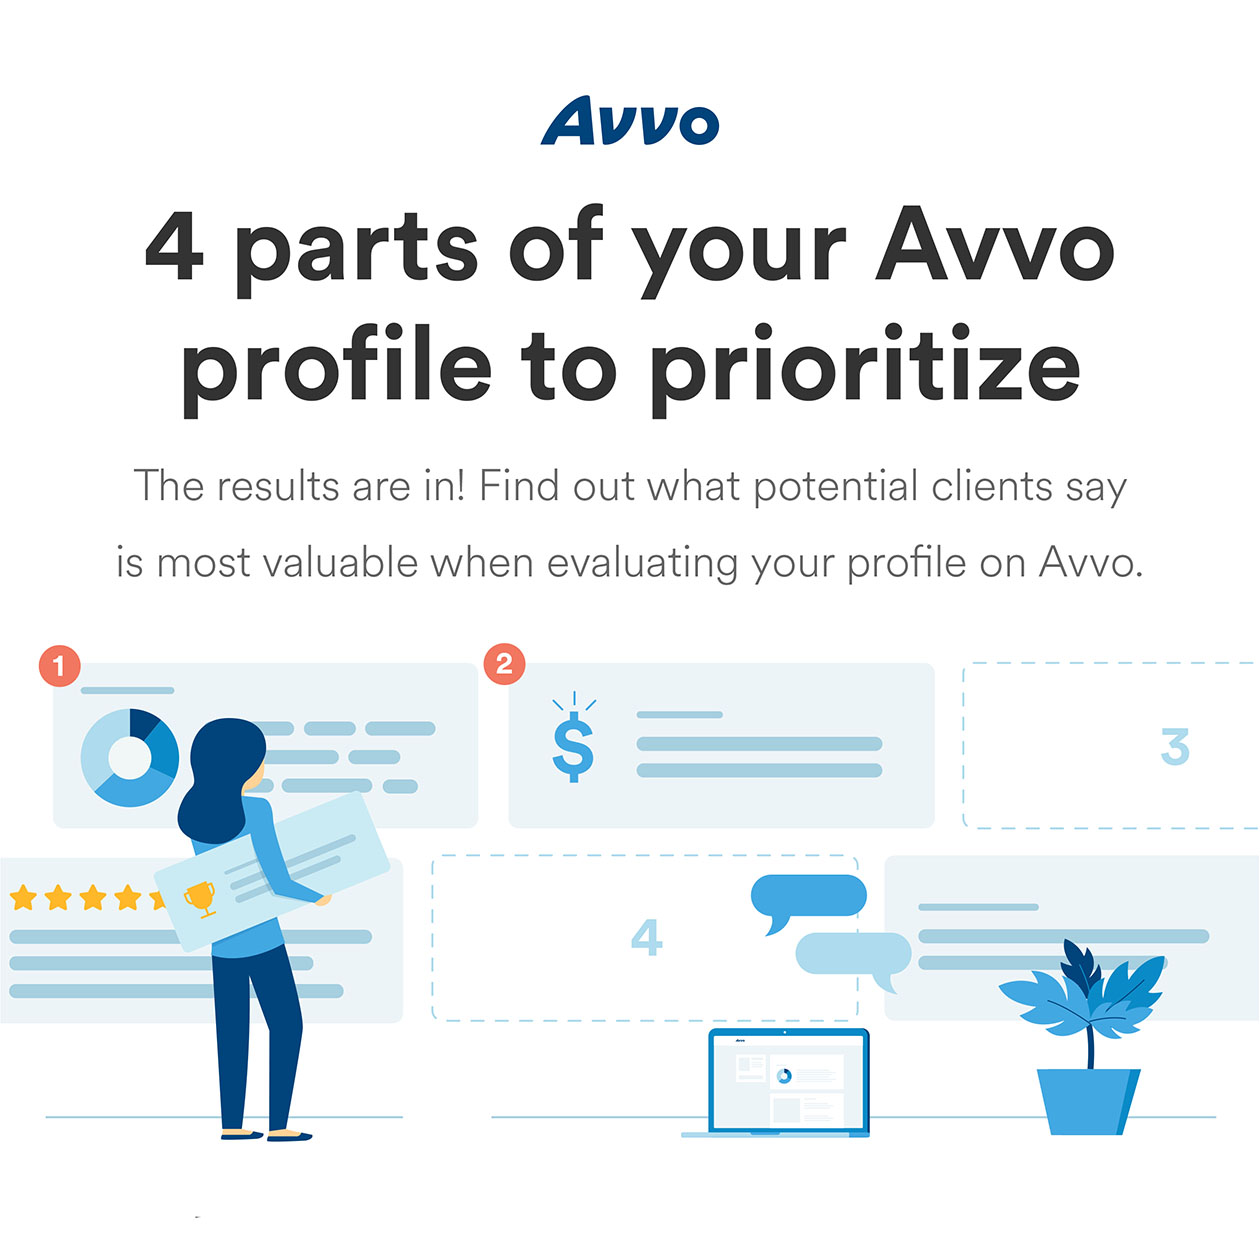 Infographic: Four parts of your Avvo profile to prioritize